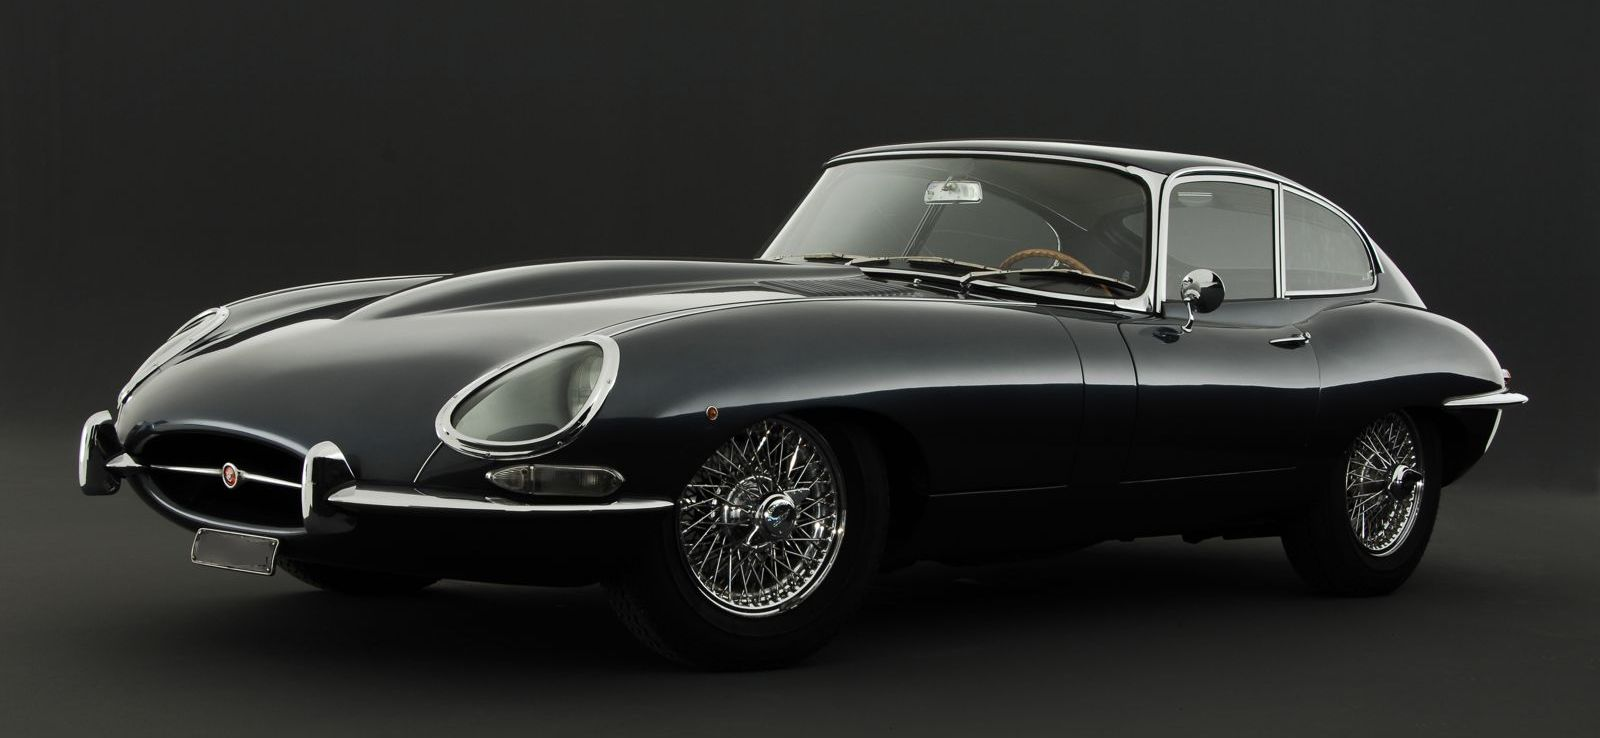 Più conosciuta come ' l'auto di Diabolik ', la Jaguar E-Type, fu prodotta dalla britannica Jaguar dal 1961 al 1975. Cult Stories Diabolik Jaguar E Type nera black comics fumetto thieves and cops cars Eva Kant cult stories cultstories cinema cult story cultstory art culture music ipse dixit aneddoti citazioni frasi famose aforismi immagini foto personaggi cultura musica storie facts fatti celebrità vip cult spettacoli live performance concerto photo photography celebrity giornalismo scrittura libri genio pop icon attore cantante solista pittrice scultore attrice star diva sex symbol Suggestion Expanded sub-suggestions diabolik lovers diabolik lovers 02 vostfr diabolik lovers saison 2 diabolik lovers 03 vostfr diabolik lovers 04 vostfr diabolik lovers 06 vostfr diabolik lovers 05 vostfr diabolik lovers 12 vostfr diabolik lovers 07 vostfr diabolik lovers 10 vostfr Diabolik a diabolik anime diabolik and eva diabolik ayato diabolik aca lukas diabolik animated diabolik animated series episode list diabolik art diabolik arrestato lazio diabolik albi diabolik arretrati Diabolik b diaboliq bike diabolik bd diabolik boutique montreal diabolik boutique diabolik black track jacket with white stripes diabolik bsn diabolik blouson diabolik billx diabolik brothers diabolik bava Diabolik c diabolik circus diabolik clothing diabolik comics diabolik car diabolik clair de lune diabolik club diabolik cartoon diabolik cartone diabolik chi sei diabolik cbr Diabolik d diabolik dvd Diabolik e diabolik endurance diabolik episode 1 vf diabolik episode 1 diabolik episode diabolik ebay diabolik ebook diabolik ebook gratis diabolik eva download diabolic ebook diabolik ep 1 ita Diabolik f diabolik ff9 diabolik film diabolik fumetti diabolik festival suisse diabolik funky beats original mix diabolik festival diabolik - funky beats diabolik fantomas diabolik forum diabolik fumetti online Diabolik g diabolik guadeloupe Diabolik h diabolik headcanons diabolik histoire diabolik habit diabolik heart of crystal lake diabolic pokerstars hack diabolic hack diabolik ho scelto di uccidere diabolik historieta diabolik hq download diabolik hoodie Diabolik i diabolik invertigo diabolik it diabolik irriducibili diabolik il re del terrore diabolik il film diabolik imdb diabolik il re del terrore pdf diabolik il re del terrore originale diabolik inedito diabolik in pdf Diabolik j diabolik jeans diabolik jeu diabolik john phillip law diabolik jaguar diabolik jewelry diabolik jaguar e type diabolik jetix diabolik jaguar superstars diabolik jacket diabolik johnny dorelli Diabolik k diabolik lovers diabolik karting kriminel diabolik diabolik kikoku diabolik kanato diabolik knife diabolik kindle Diabolik l diabolik lovers diabolik lovers 02 vostfr diabolik lovers saison 2 diabolik lovers 03 vostfr diabolik lovers 04 vostfr diabolik lovers 06 vostfr diabolik lovers 05 vostfr diabolik lovers 12 vostfr diabolik lovers 07 vostfr diabolik lovers 10 vostfr Diabolik m diabolik montreal diabolik martigues diabolic moto diabolik magasin diabolik music diabolik more blood diabolik movie diabolik musik diabolik marque diabolik mont-royal Diabolik n diabolik nero su nero diabolik newcastle diabolik nantes diabolik ne demek diabolik n 1 diabolik n 1 valore diabolik ds diabolik numero 1 diabolik nonciclopedia diabolik numero 1 valore Diabolik o diabolik lovers diabolik original evil gear diabolik original sin diabolik original sin psp diabolik original sin wii diabolik online diabolik original sin soluzione diabolik original sin walkthrough diabolik online subtitrat diabolik original sin ps2 Diabolik p diabolik pizza diabolik psp diabolik piercing diabolik pc diabolic productions diabolik psp iso diabolik psp cso diabolik pdf diabolik panorama diabolik ps2 Diabolik q diabolik quiz diabolik quadri diabolik quadro diabolik quando tutti mentono diabolik quotes diabolik quotazioni diabolik quotazione fumetti diabolik quotazione diabolik quotev diabolik quanti numeri Diabolik r diabolic rapper diabolik records diabolik roller coaster diabolik ravenna diabolik review diabolik roman photo diabolik roller diabolik rari diabolik ristampa diabolik roma Diabolik t diabolik tatoo diabolik the original sin diabolik techno diabolik the original sin ps2 diabolik tuning club diabolik team diabolik the original sin psp diabolik team car diabolik techno vol 1 diabolik tuning cars Diabolik u diabolik ultras diabolik uscite diabolik un amore pazzo diabolik una fuga impossibile diabolik ultras lazio diabolik usati diabolik usato diabolik un mare di oro diabolik usati vendita diabolik ultras milan Diabolik v diabolik vetements diabolik's vista hda verb converter diabolik veste diabolik video diabolik valore diabolik vendo diabolik valore fumetti diabolik vampire diabolik vendita fumetti diabolik vendita Diabolik w diabolik wiki diabolik wordpress theme diabolik wikipedia italia diabolik wear diabolik wp theme diabolik watch online diabolik wiki ita diabolik wii diabolik walkthrough diabolik wife beaters Diabolik x diabolik x reader diabolik x reader lemon diabolik xbox xem diabolik lovers diabolik lovers x reader diabolik lovers x reader lemon diabolik lovers x reader fanfiction diabolik anno xii diabolik anno xxvi diabolik lovers kanato x reader Diabolik y diabolik youtube diabolik yui diabolik yaoi your diabolik lovers boyfriend yui diabolik lovers tumblr youtube diabolik lovers episode 7 youtube diabolik lovers episode 3 your diabolik lovers life quiz diabolik lovers yui komori youtube diabolik lovers Diabolik z diabolikzine diabolik zozo diabolik zarcone diabolik zaniboni diabolik zadar diabolik zeka diabolik zucca diabolik zinger diabolik zippy diabolik znacenje